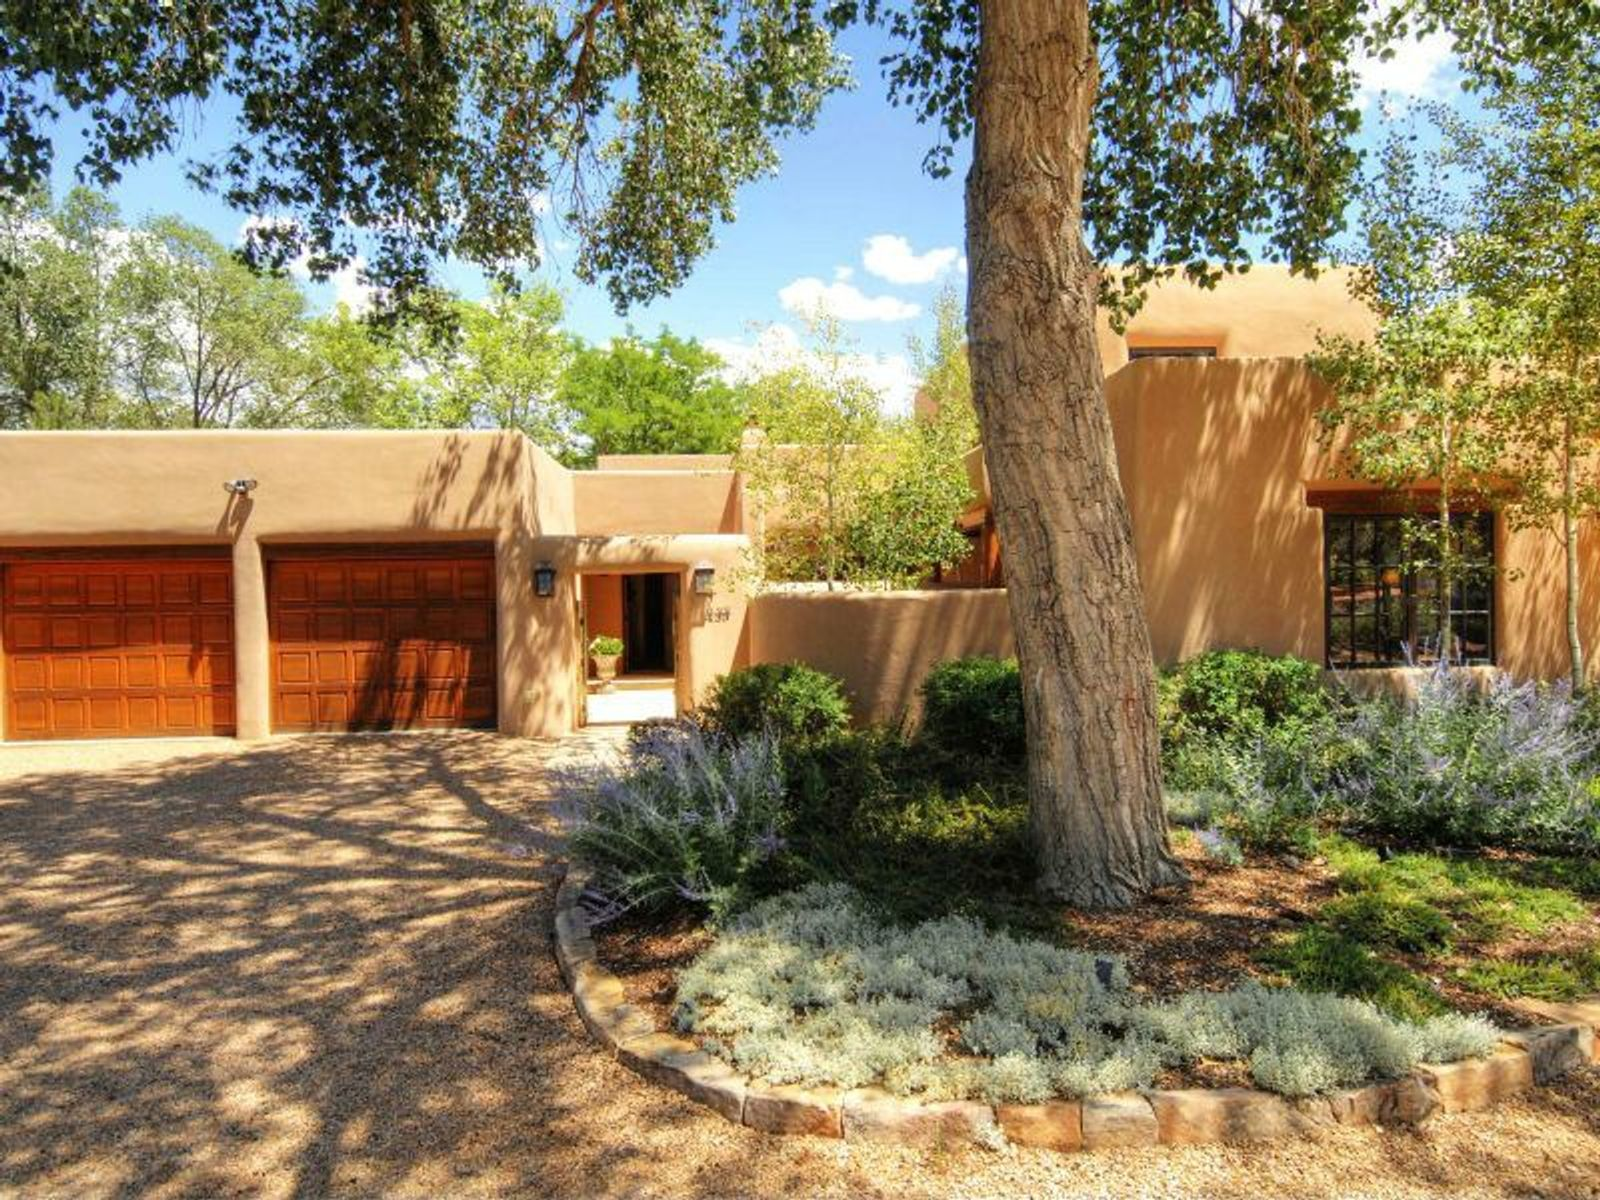 433 Camino del Monte Sol, Santa Fe NM Single Family Home - Santa Fe Real Estate